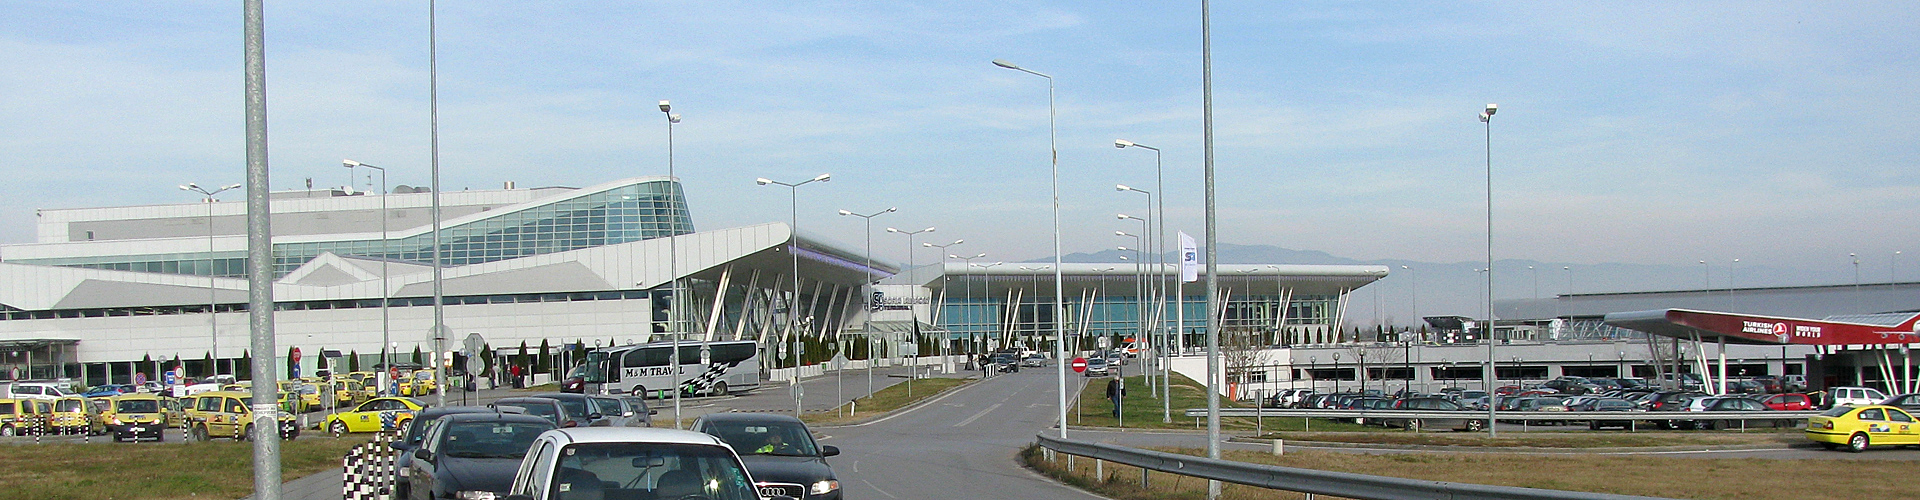 airport-2